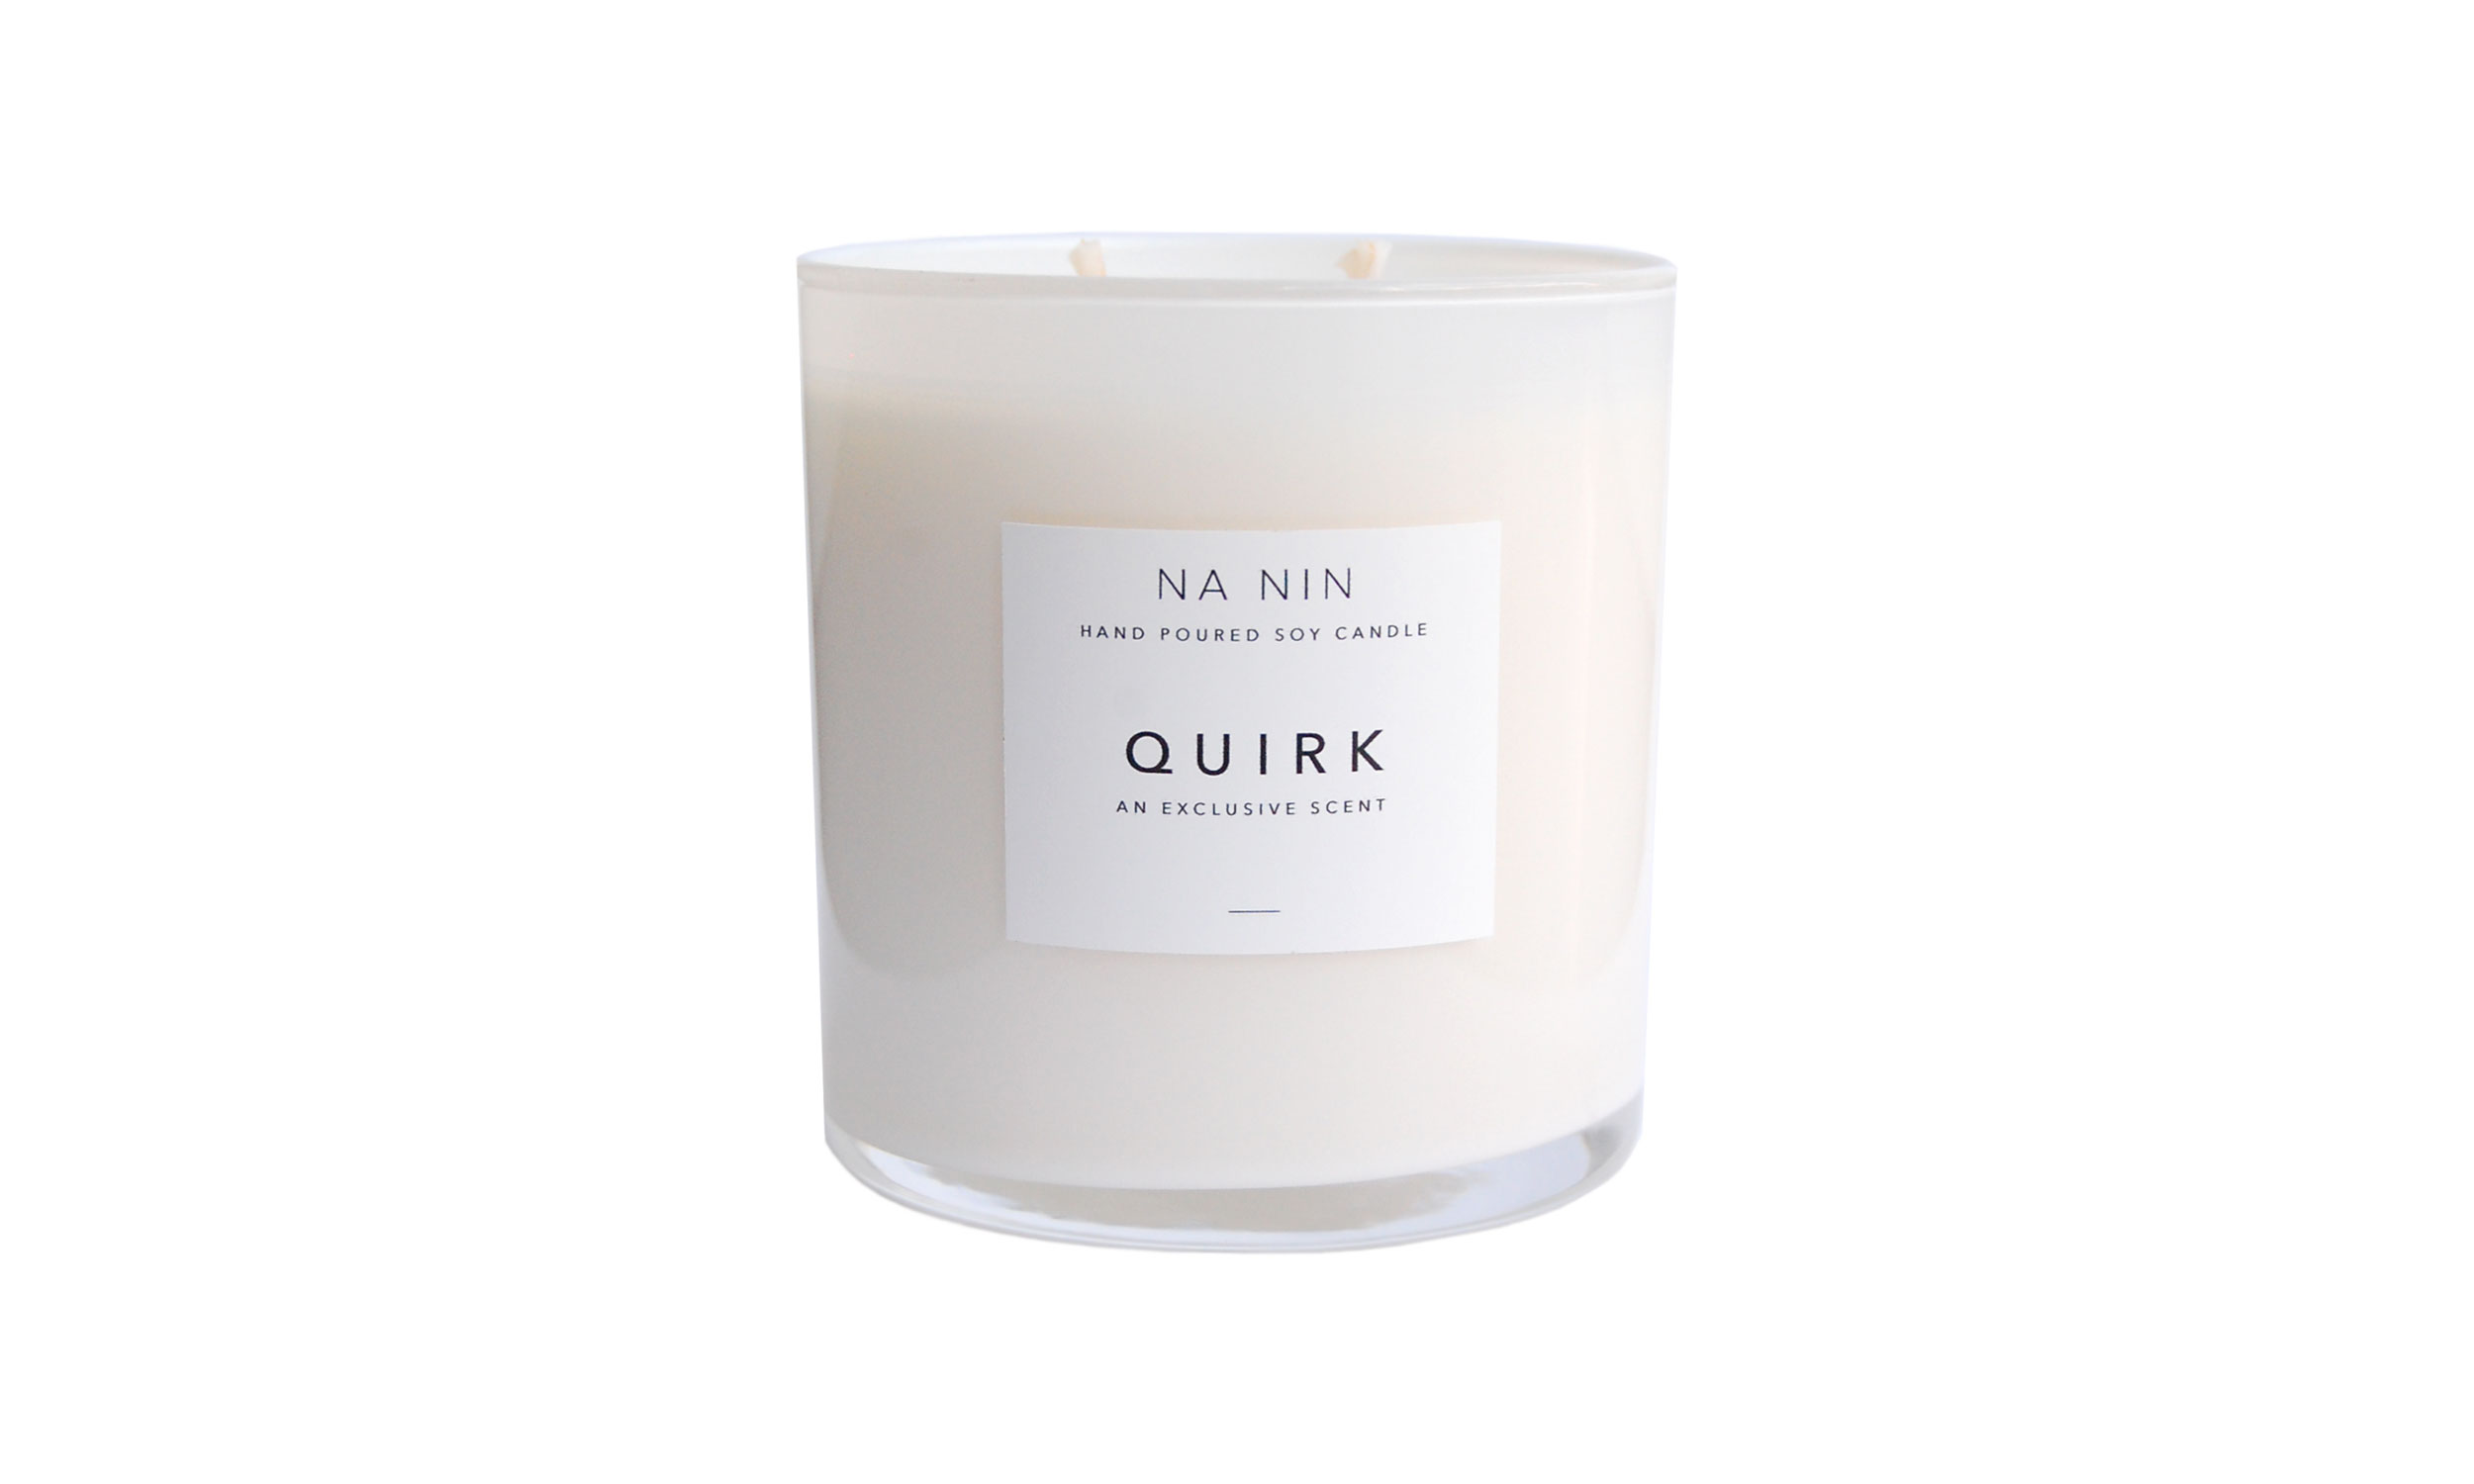 Quirk Hand Poured Soy Candle,  Exclusively from Na Nin , $32    Contact us for purchase